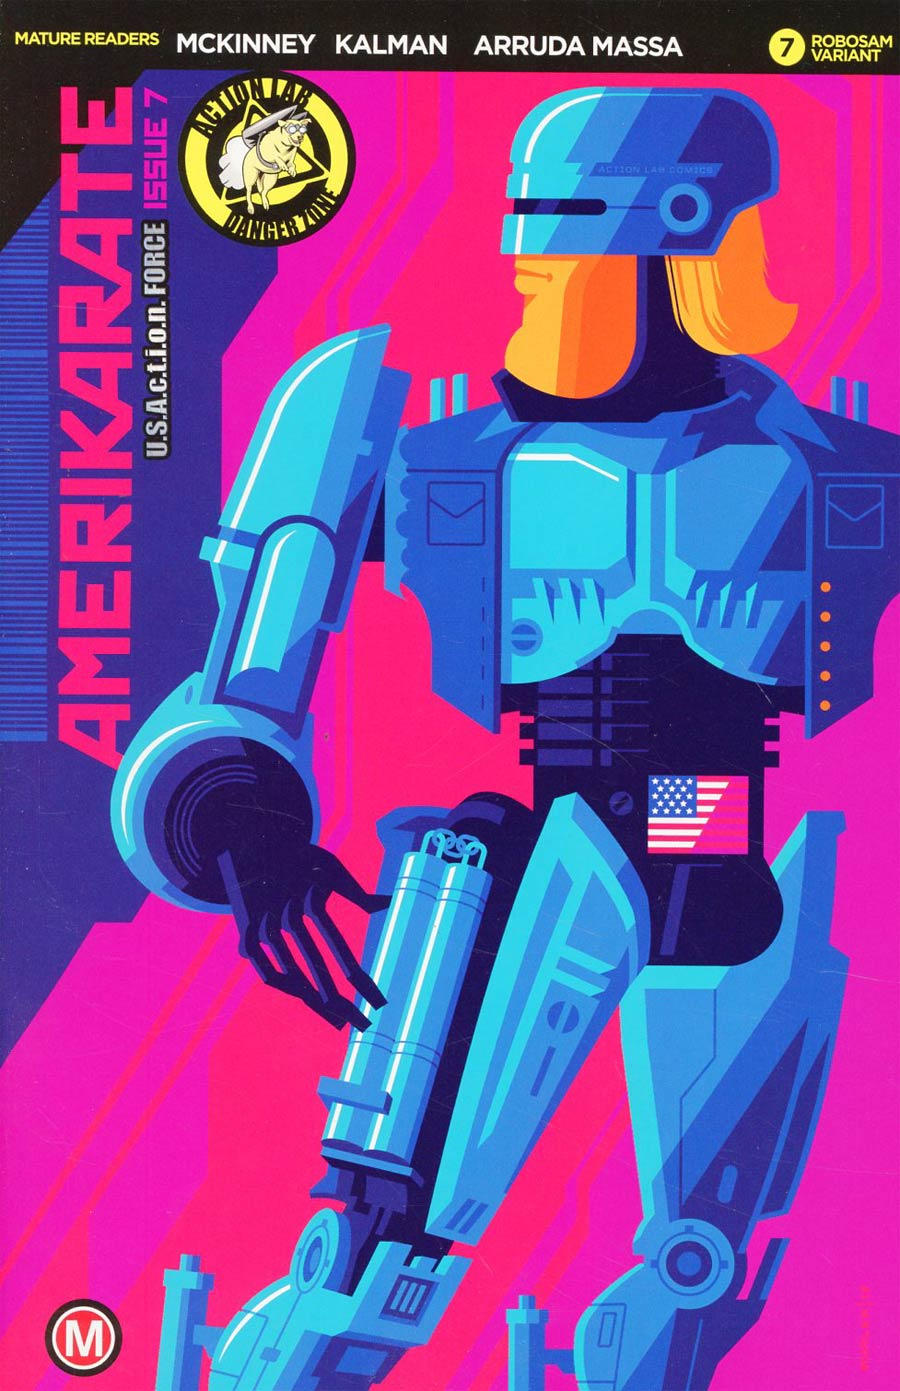 Amerikarate #7 Cover C Variant Tom Whalen Robosam Cover